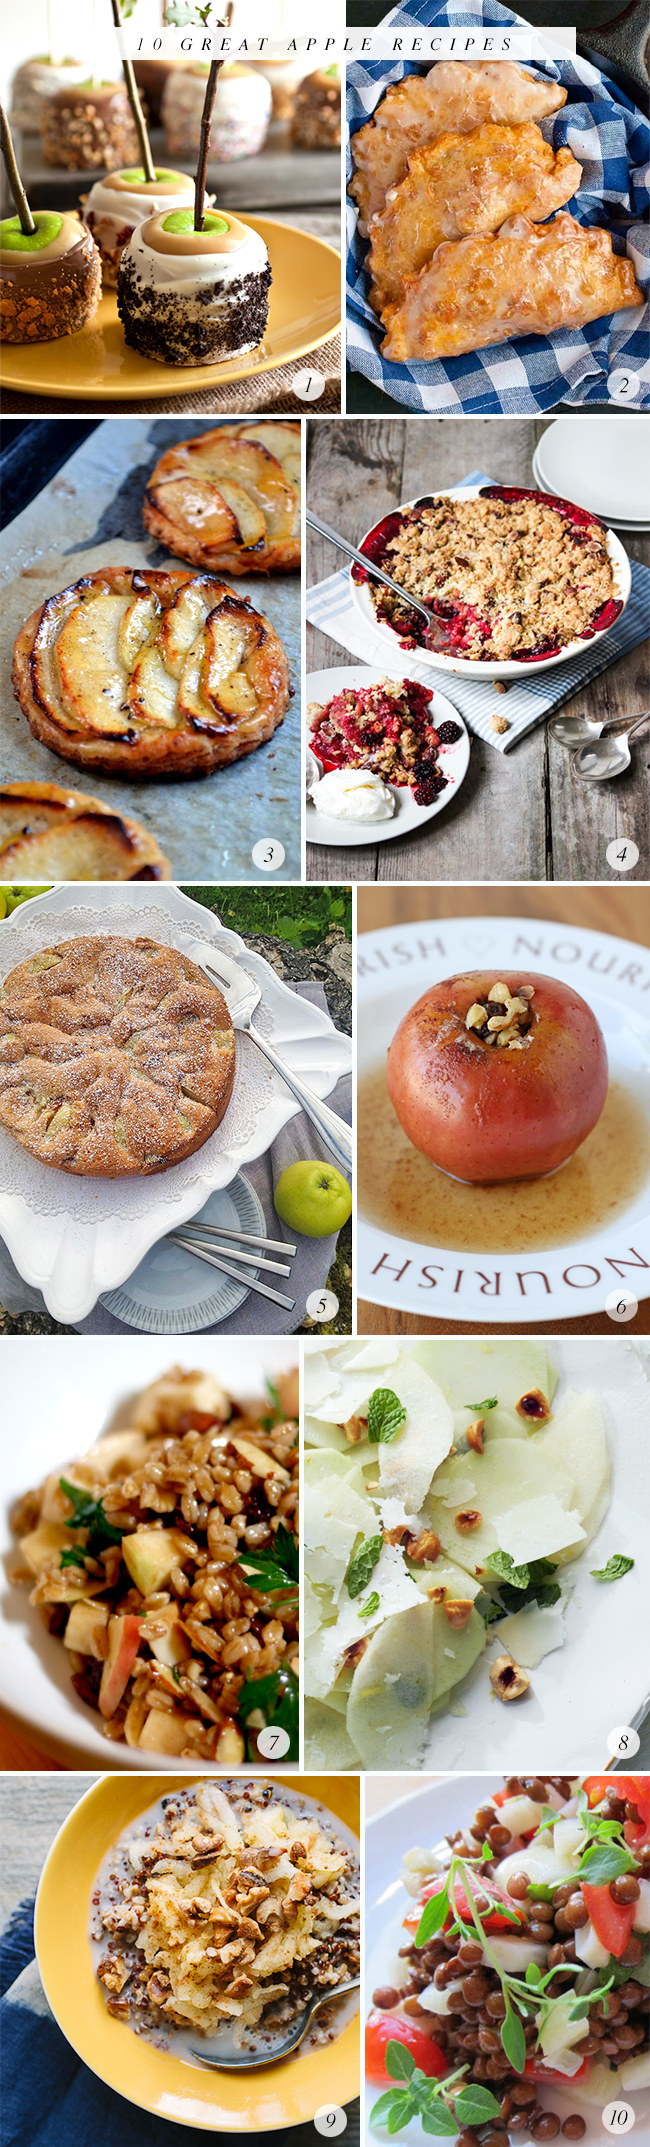 10 Great Apple Recipes (via Bubby and Bean)